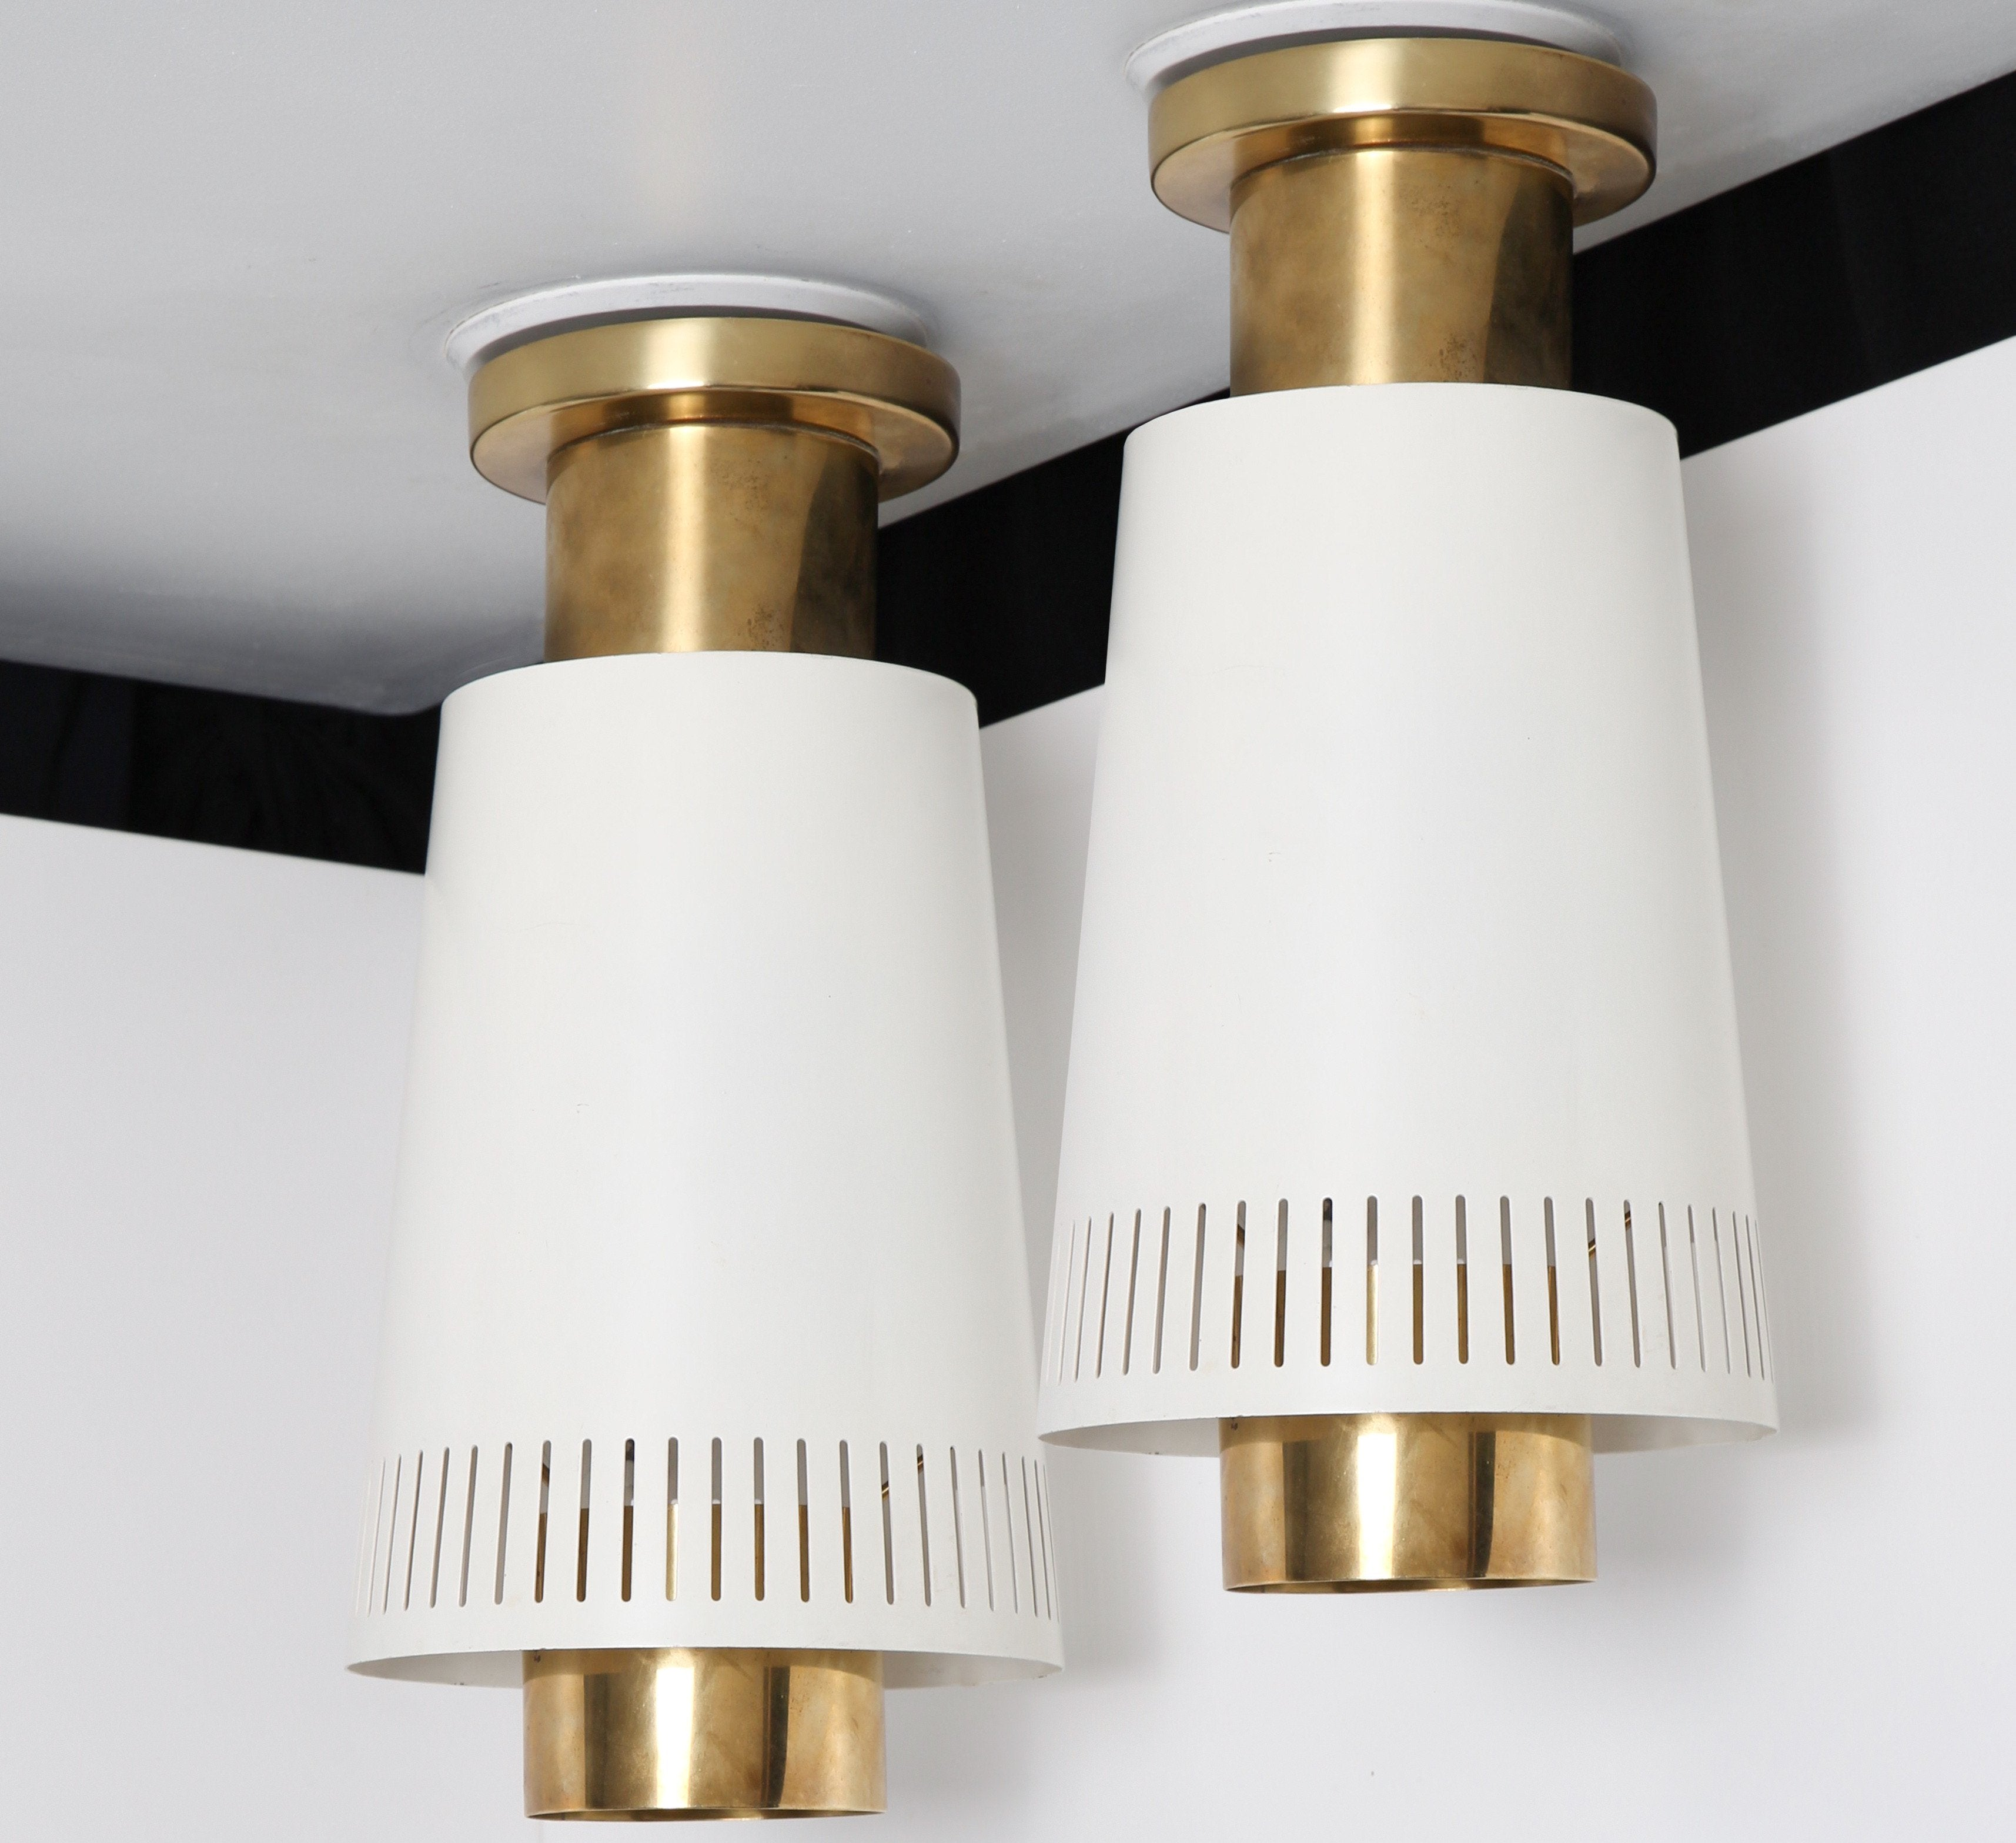 Paavo Tynell Pair of Mounted Ceiling Lamps by Idman Oy 1950s